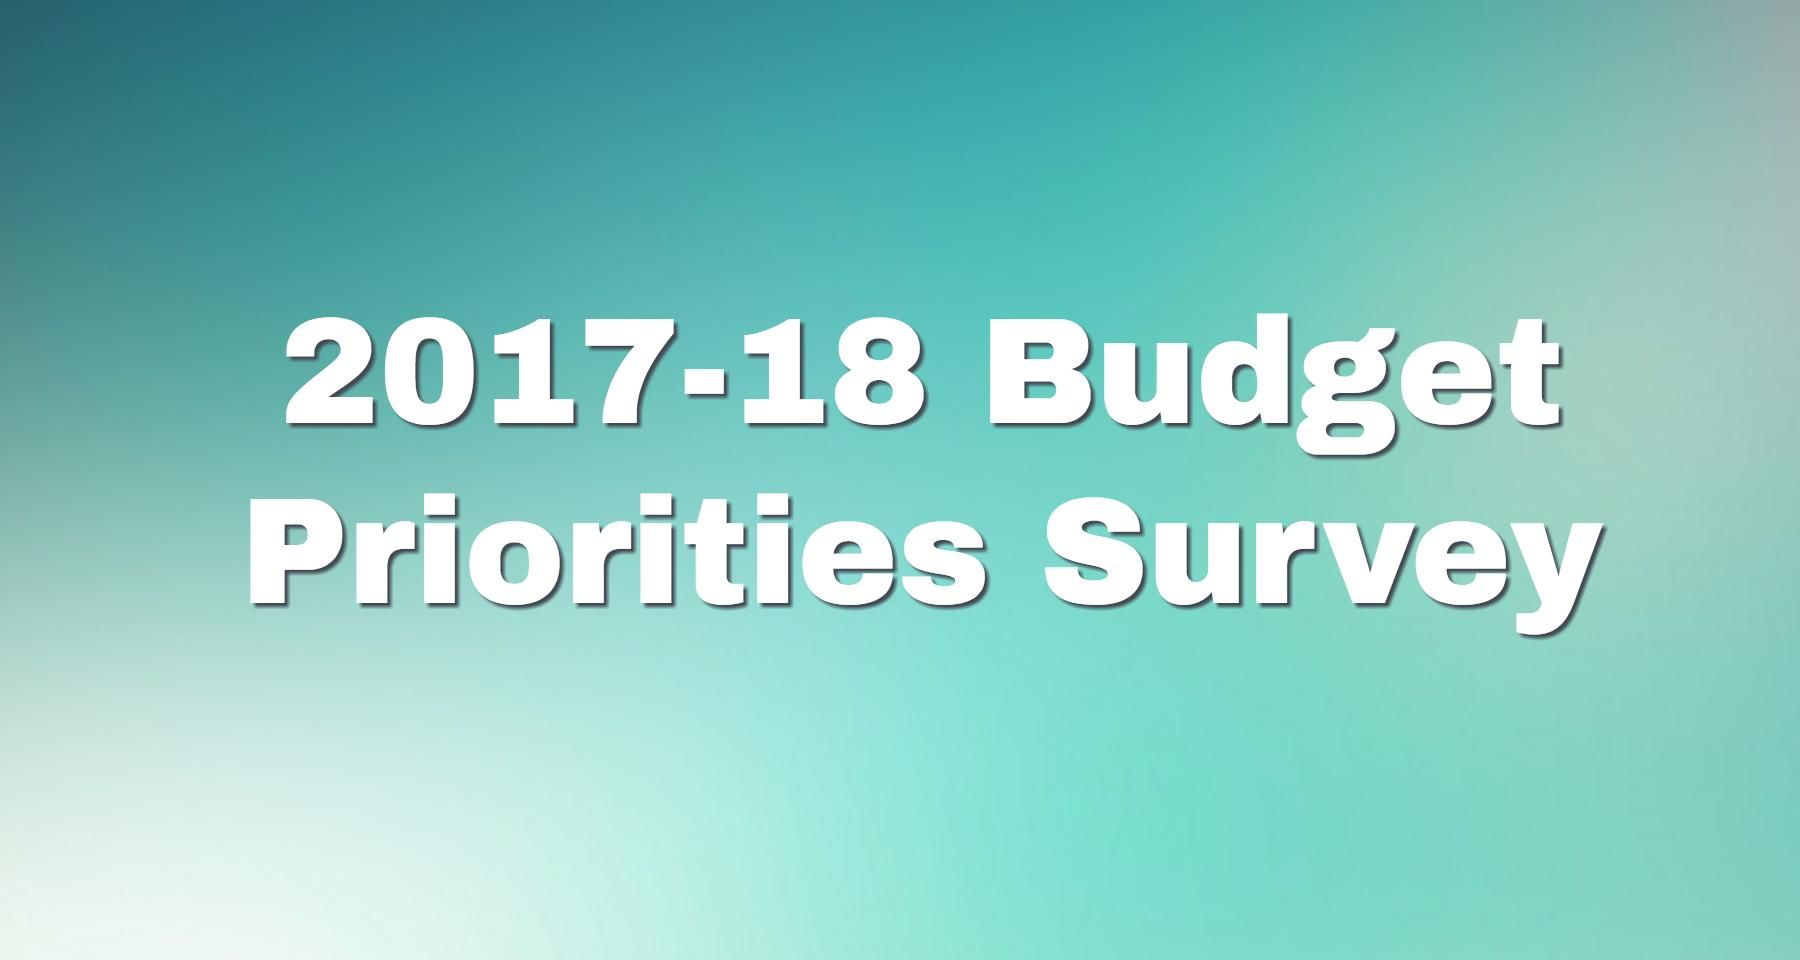 2017-18 Budget Priorities Survey Now Available